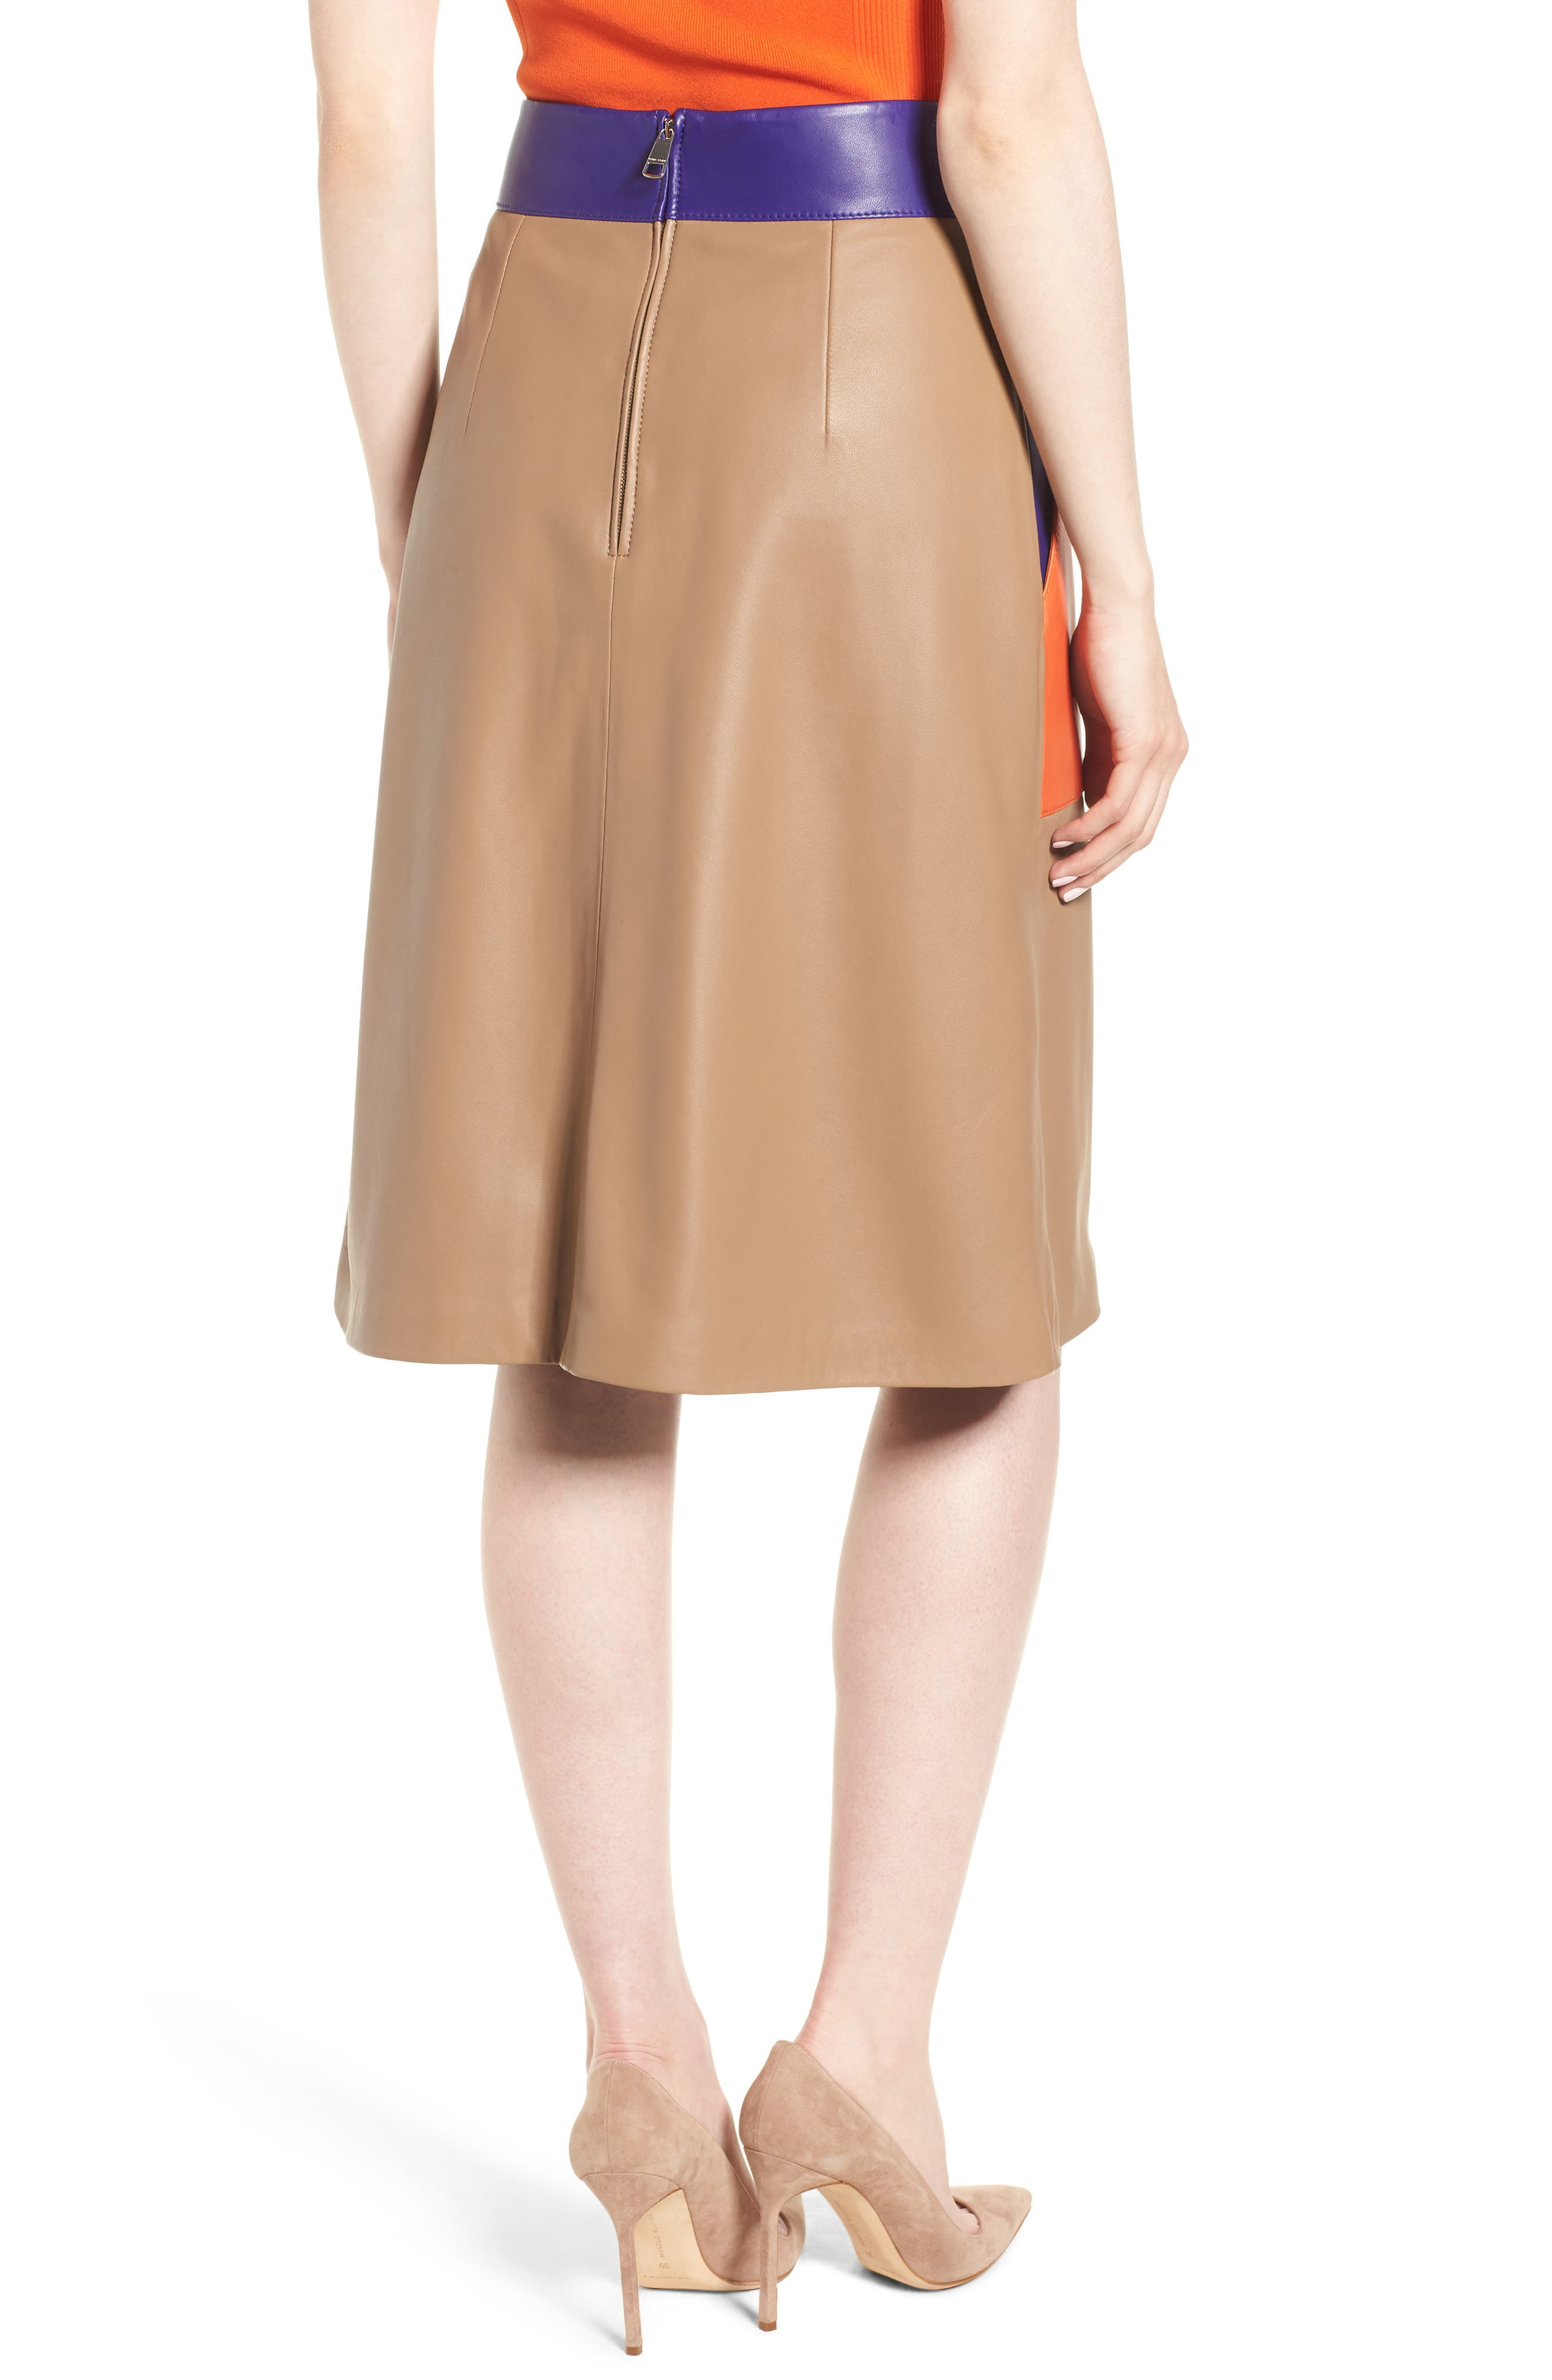 Seplea Colorblock Leather Skirt,                             Alternate thumbnail 2, color,                             Warm Clay Fantasy